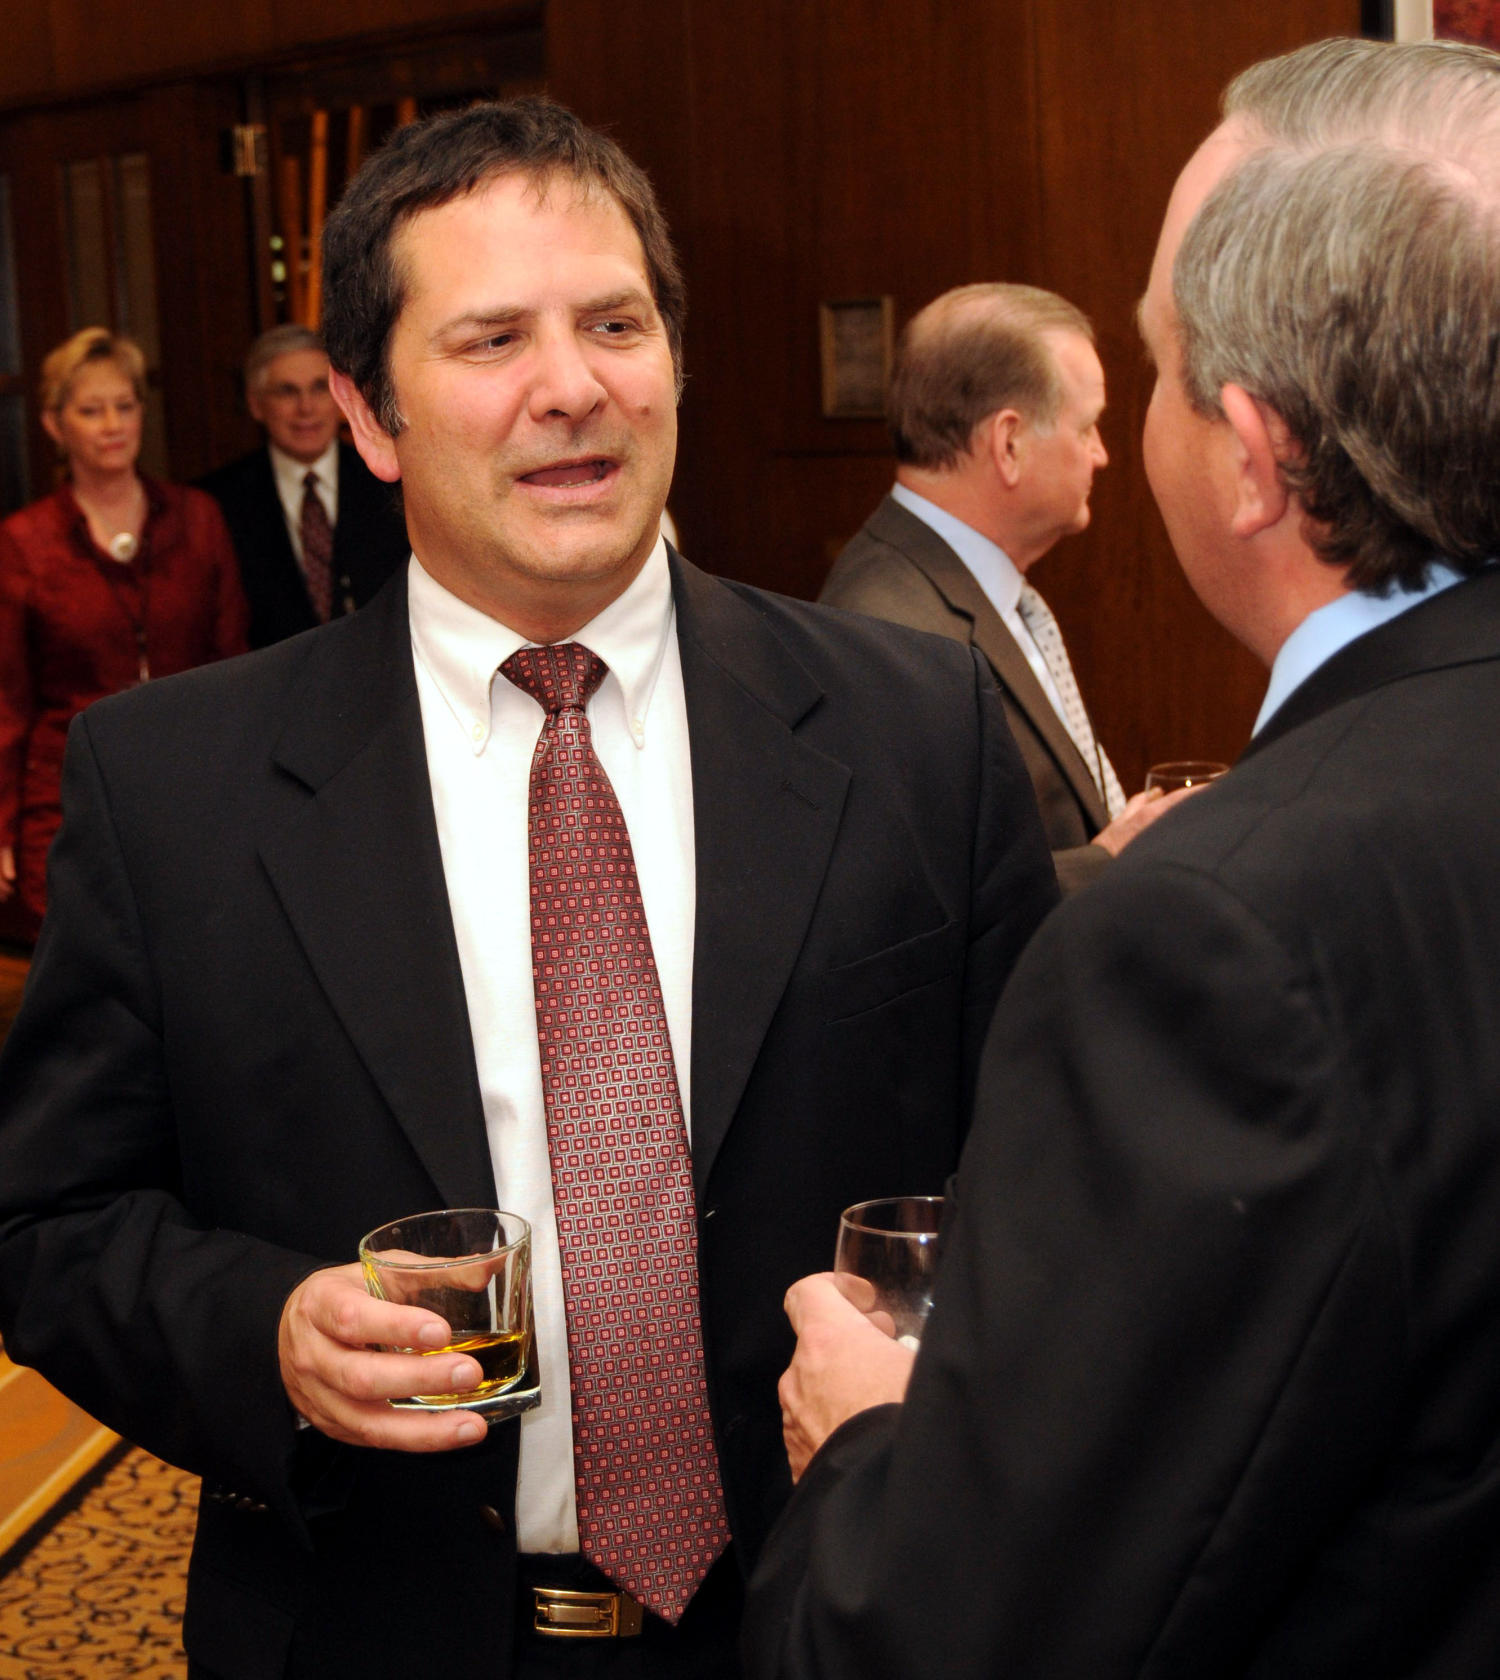 [Guests drinking and talking with one another], Photograph of guests seen chatting with one another and drinking refreshments during a reception at the 2010 Texas Daily Newspaper Association annual meeting held in Houston, Texas.,